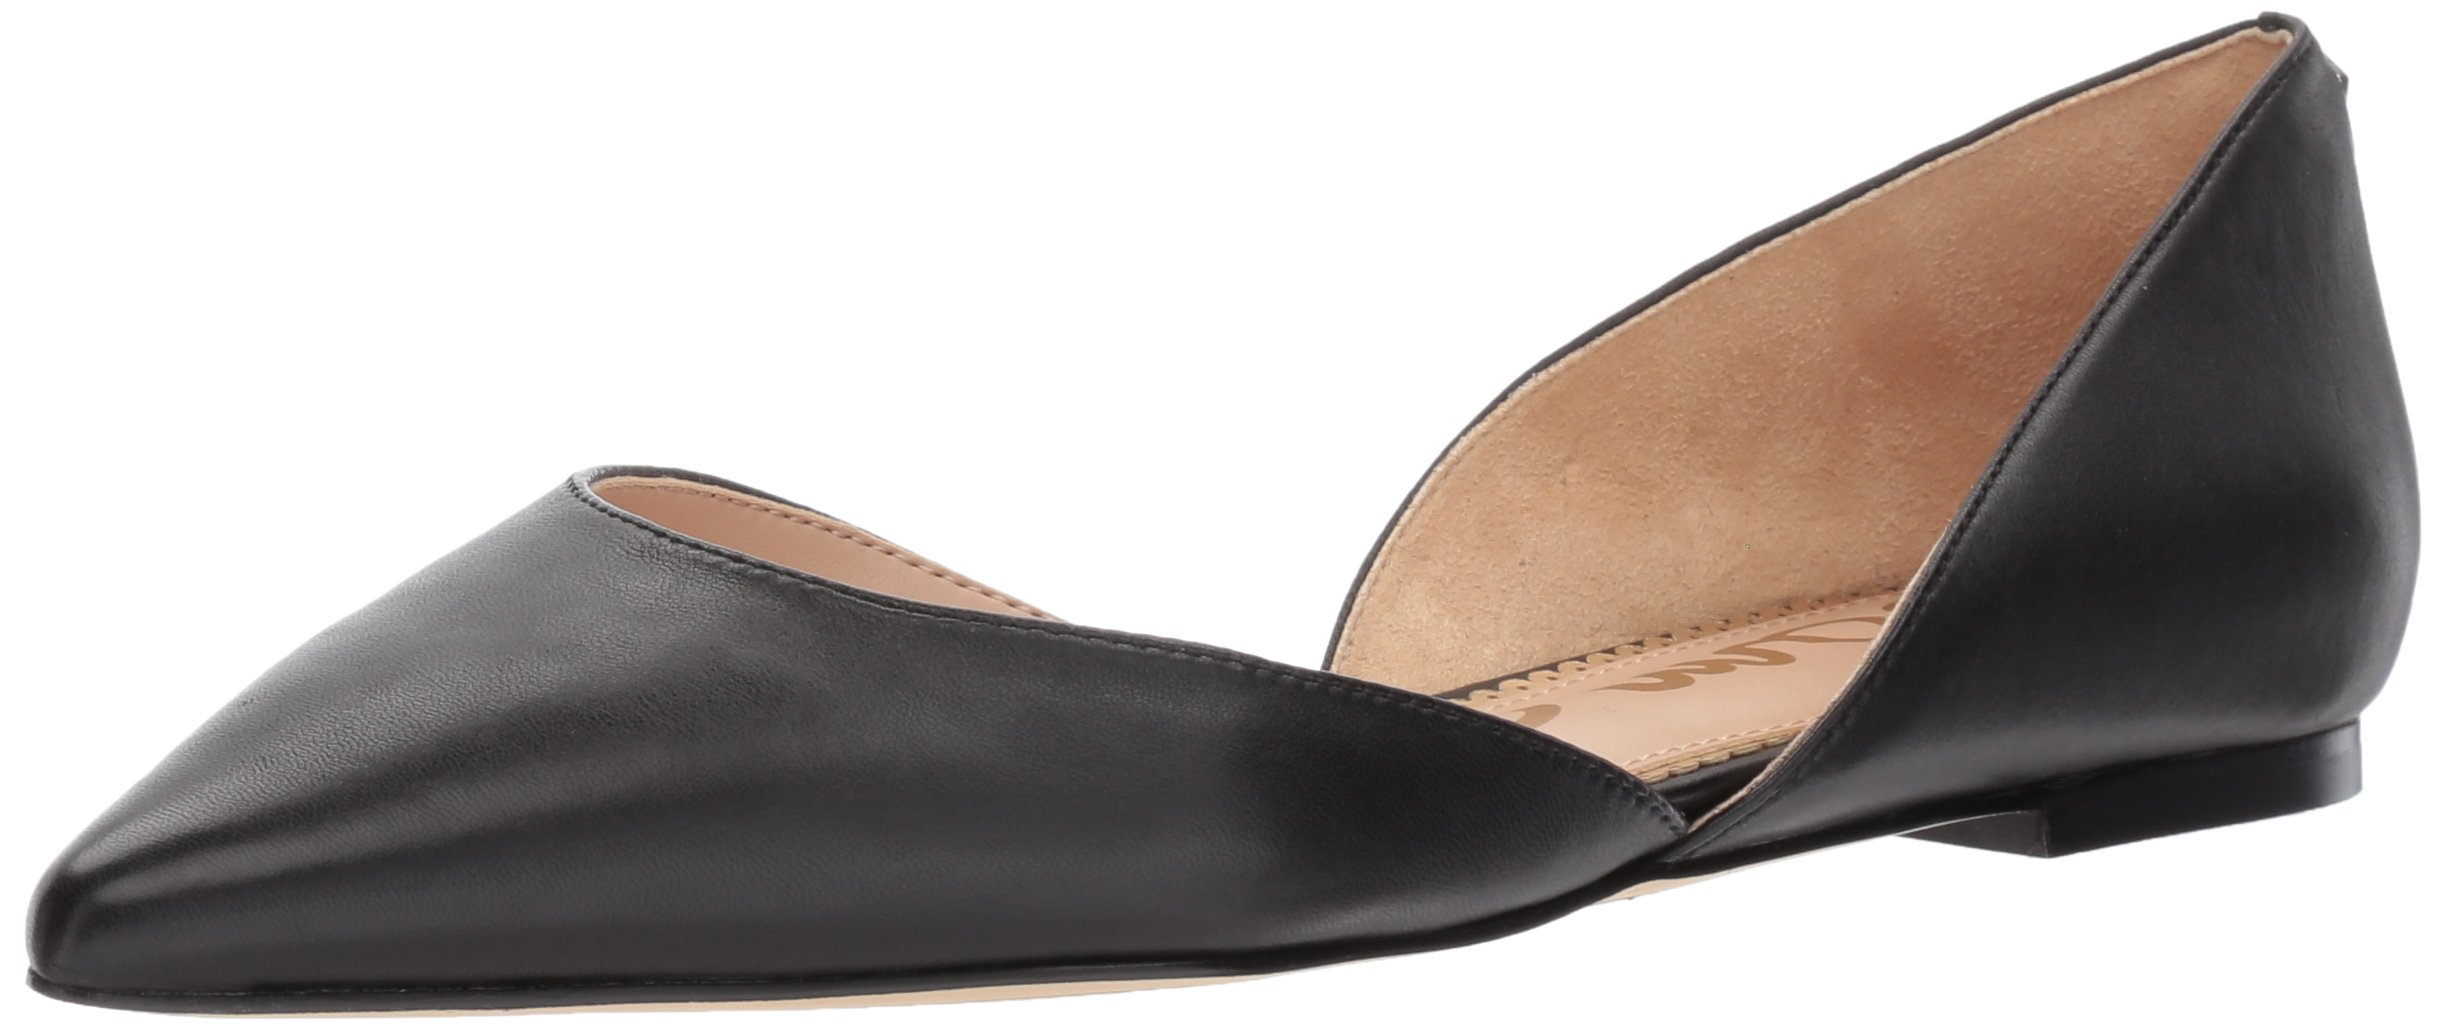 Sam Edelman Women's Rodney Ballet Flat, Black Leather, 7 M US